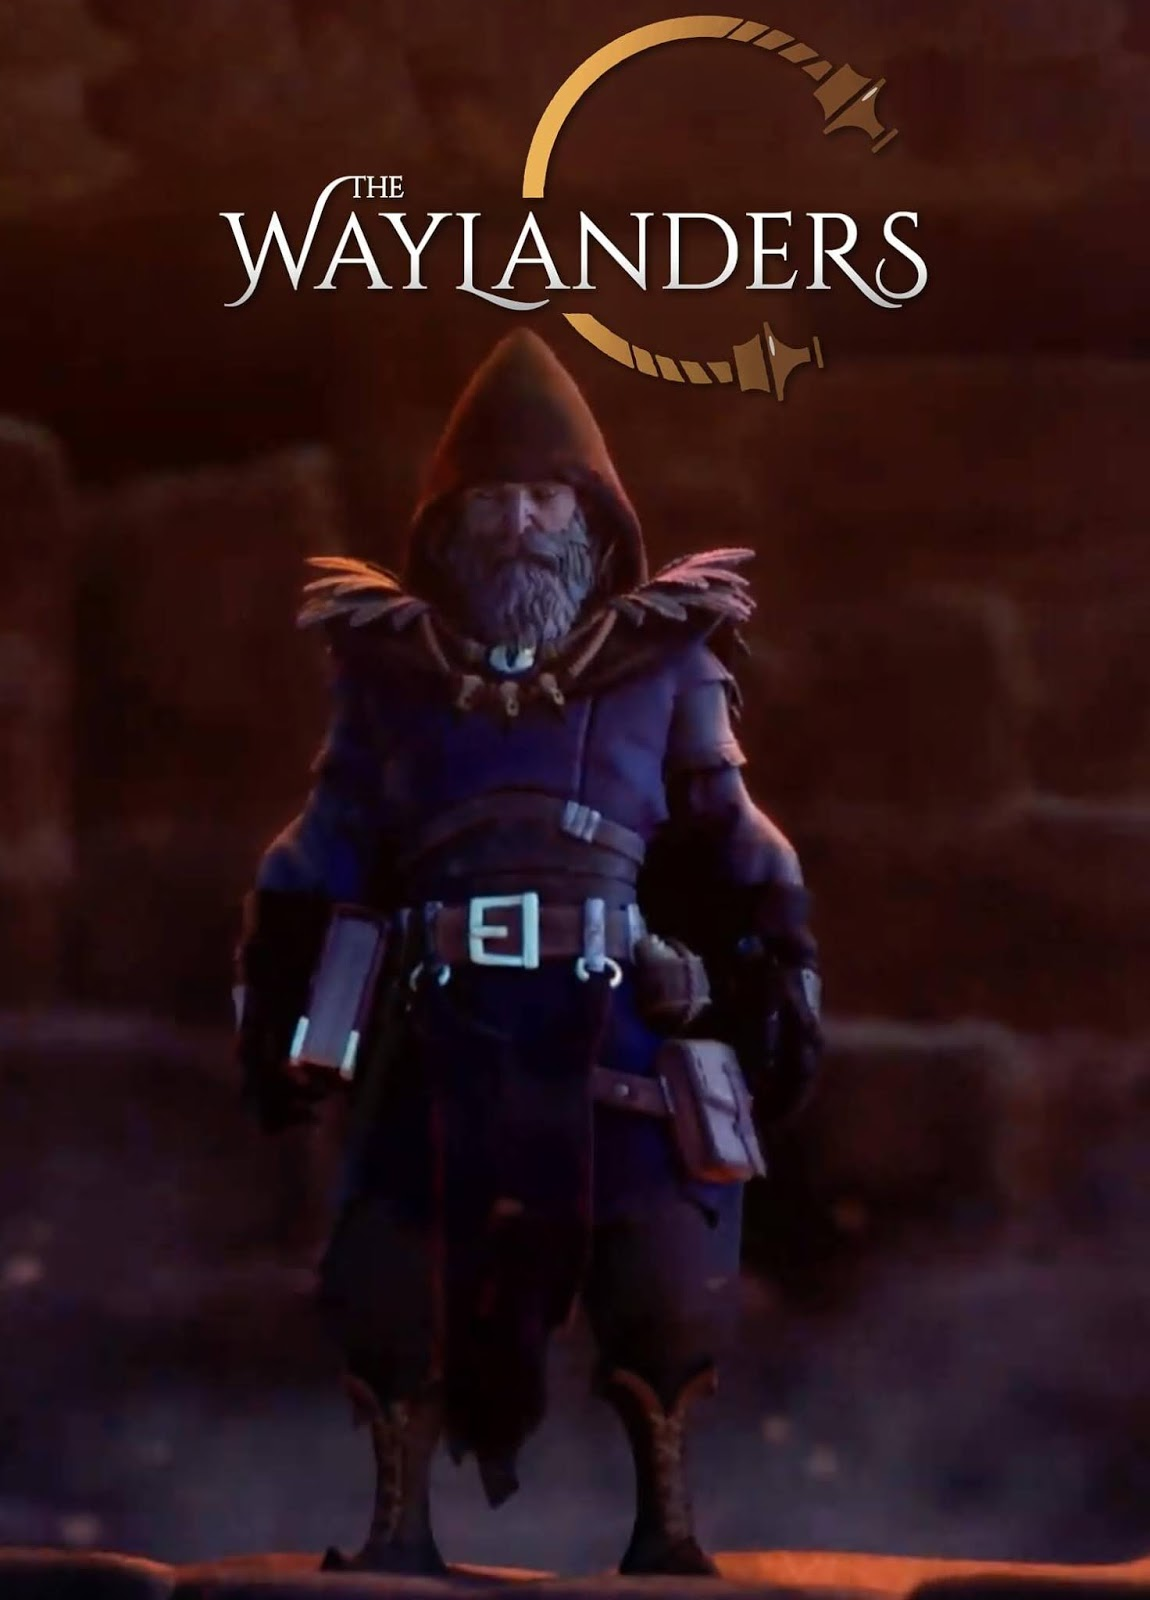 Examining The Waylanders, downloading The Waylanders for the computer, downloading the latest edition of The Waylanders, Abbey The Waylanders, Abbey The Waylanders's personal computer, downloading The Waylanders's voice from GOG, The Waylanders's prayer section